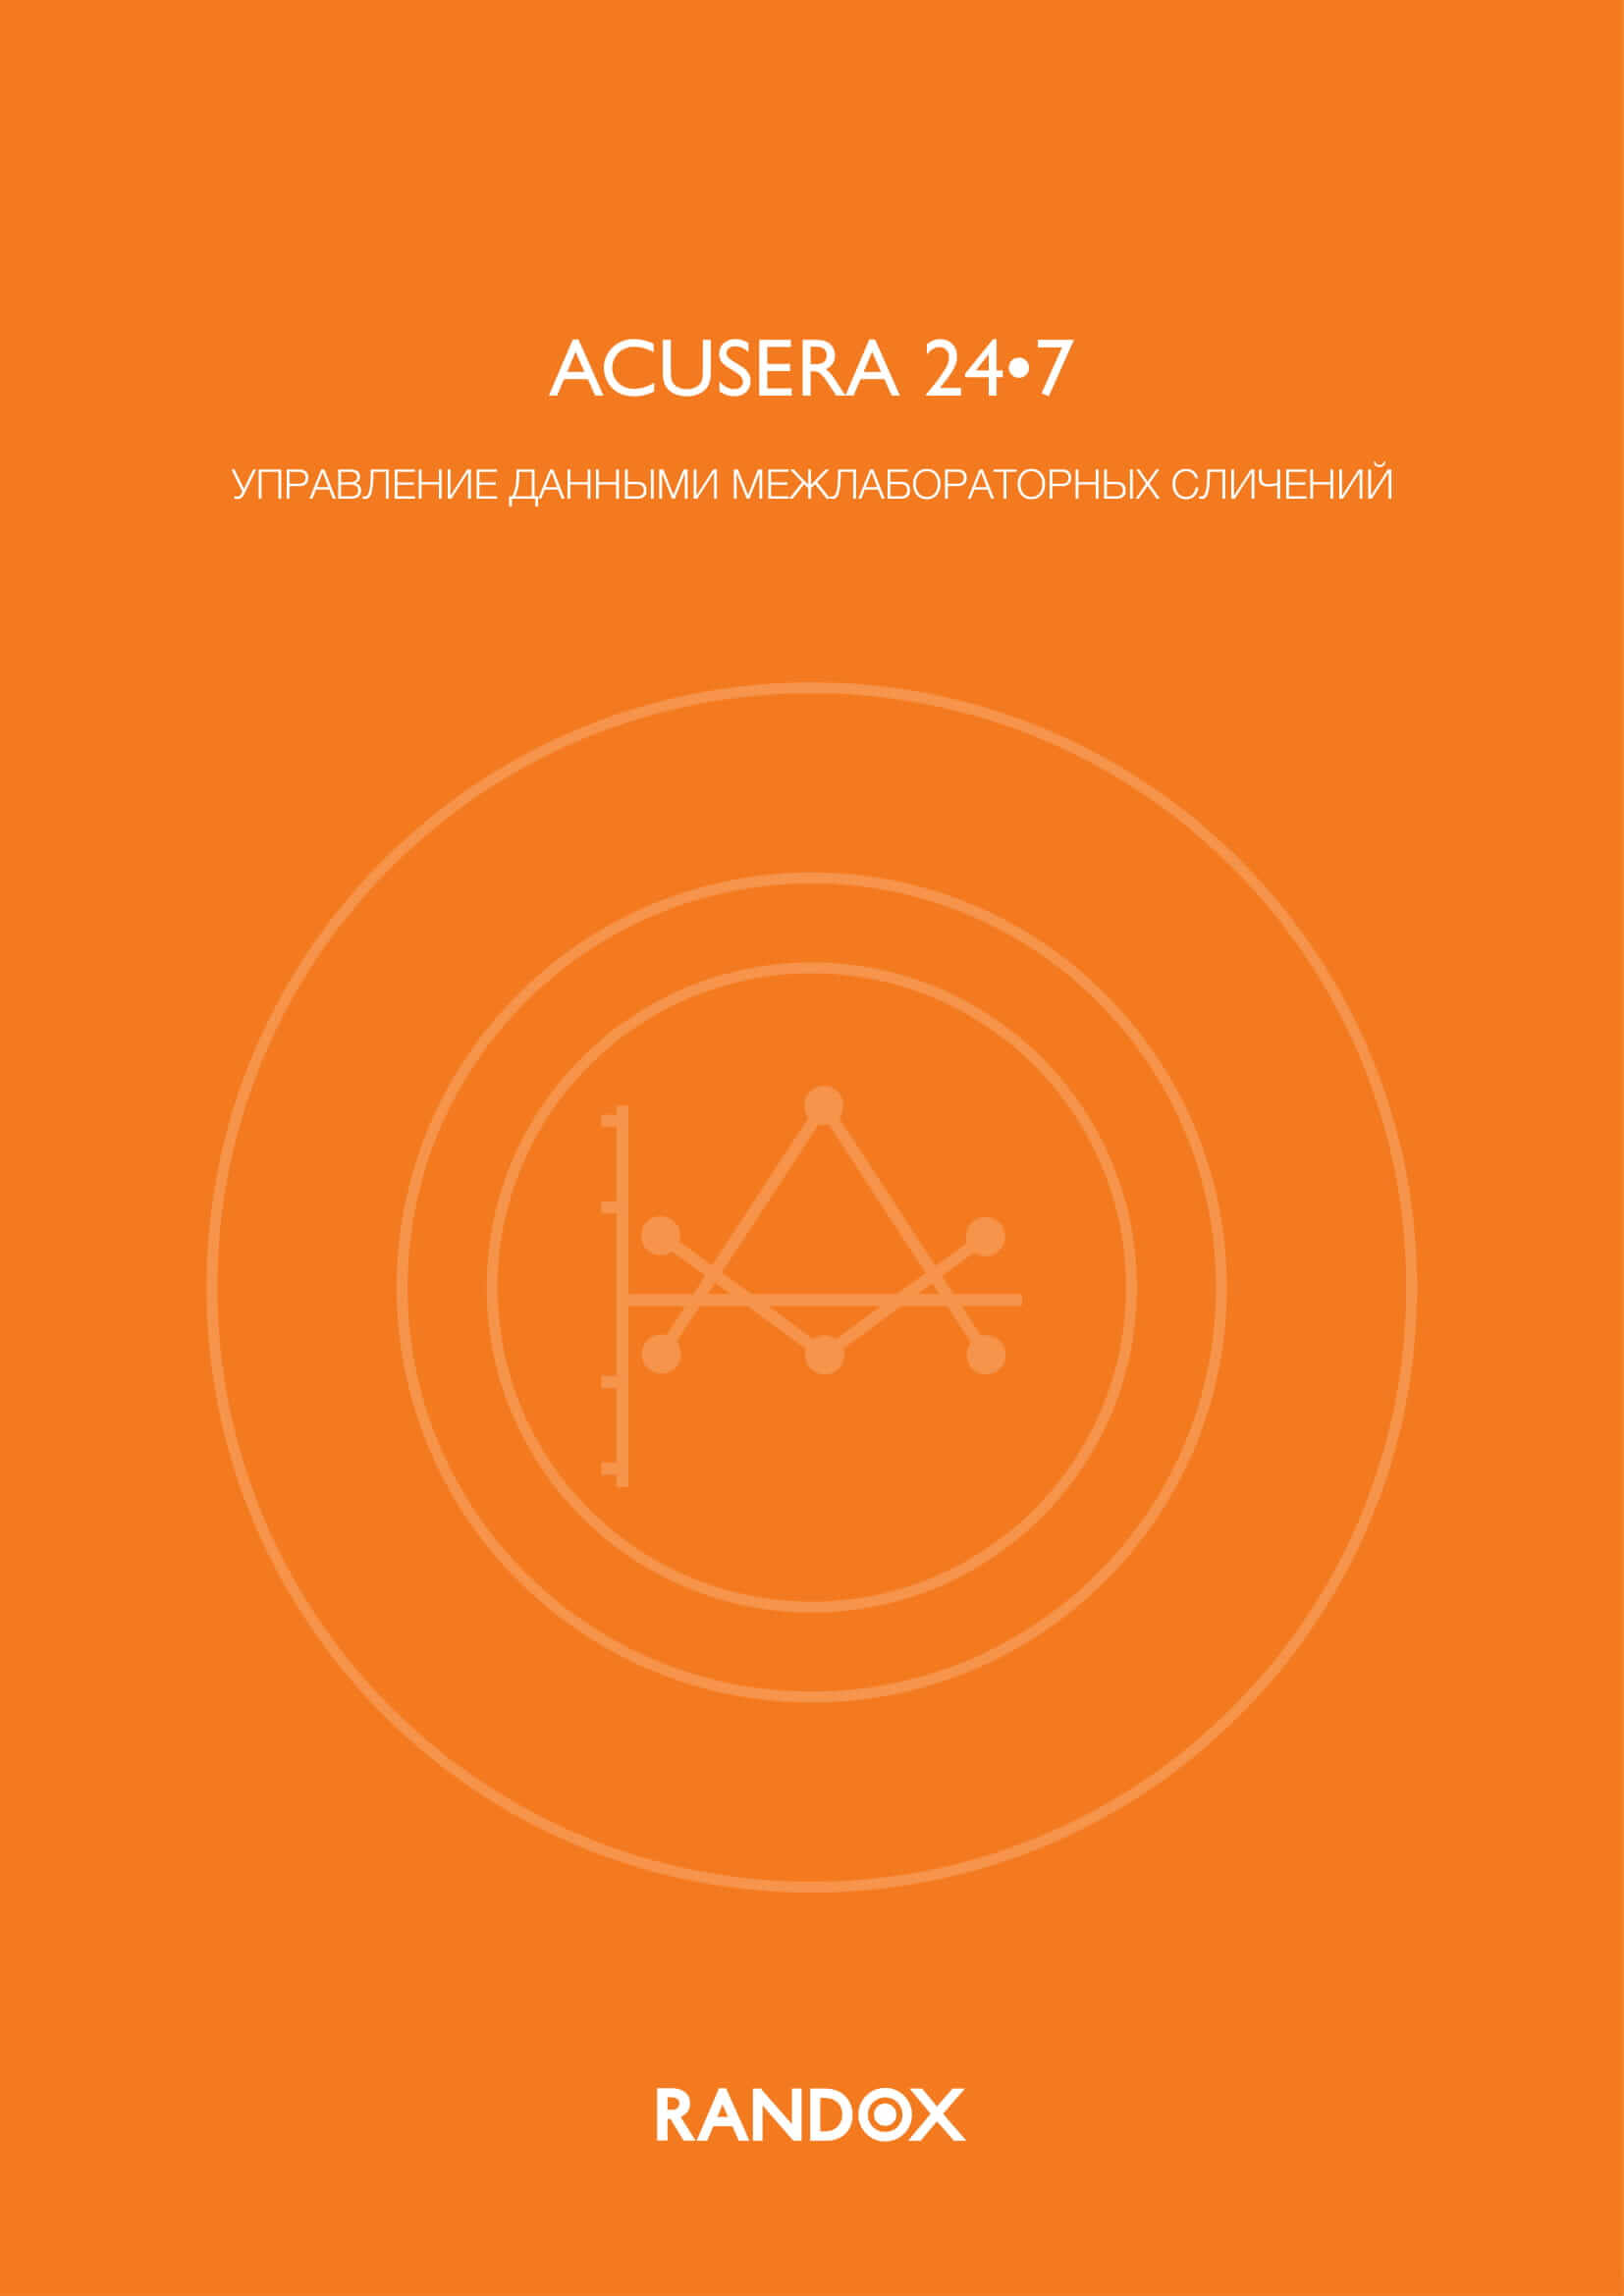 LT244RUS - Acusera 24.7 (Russian) - International brochure